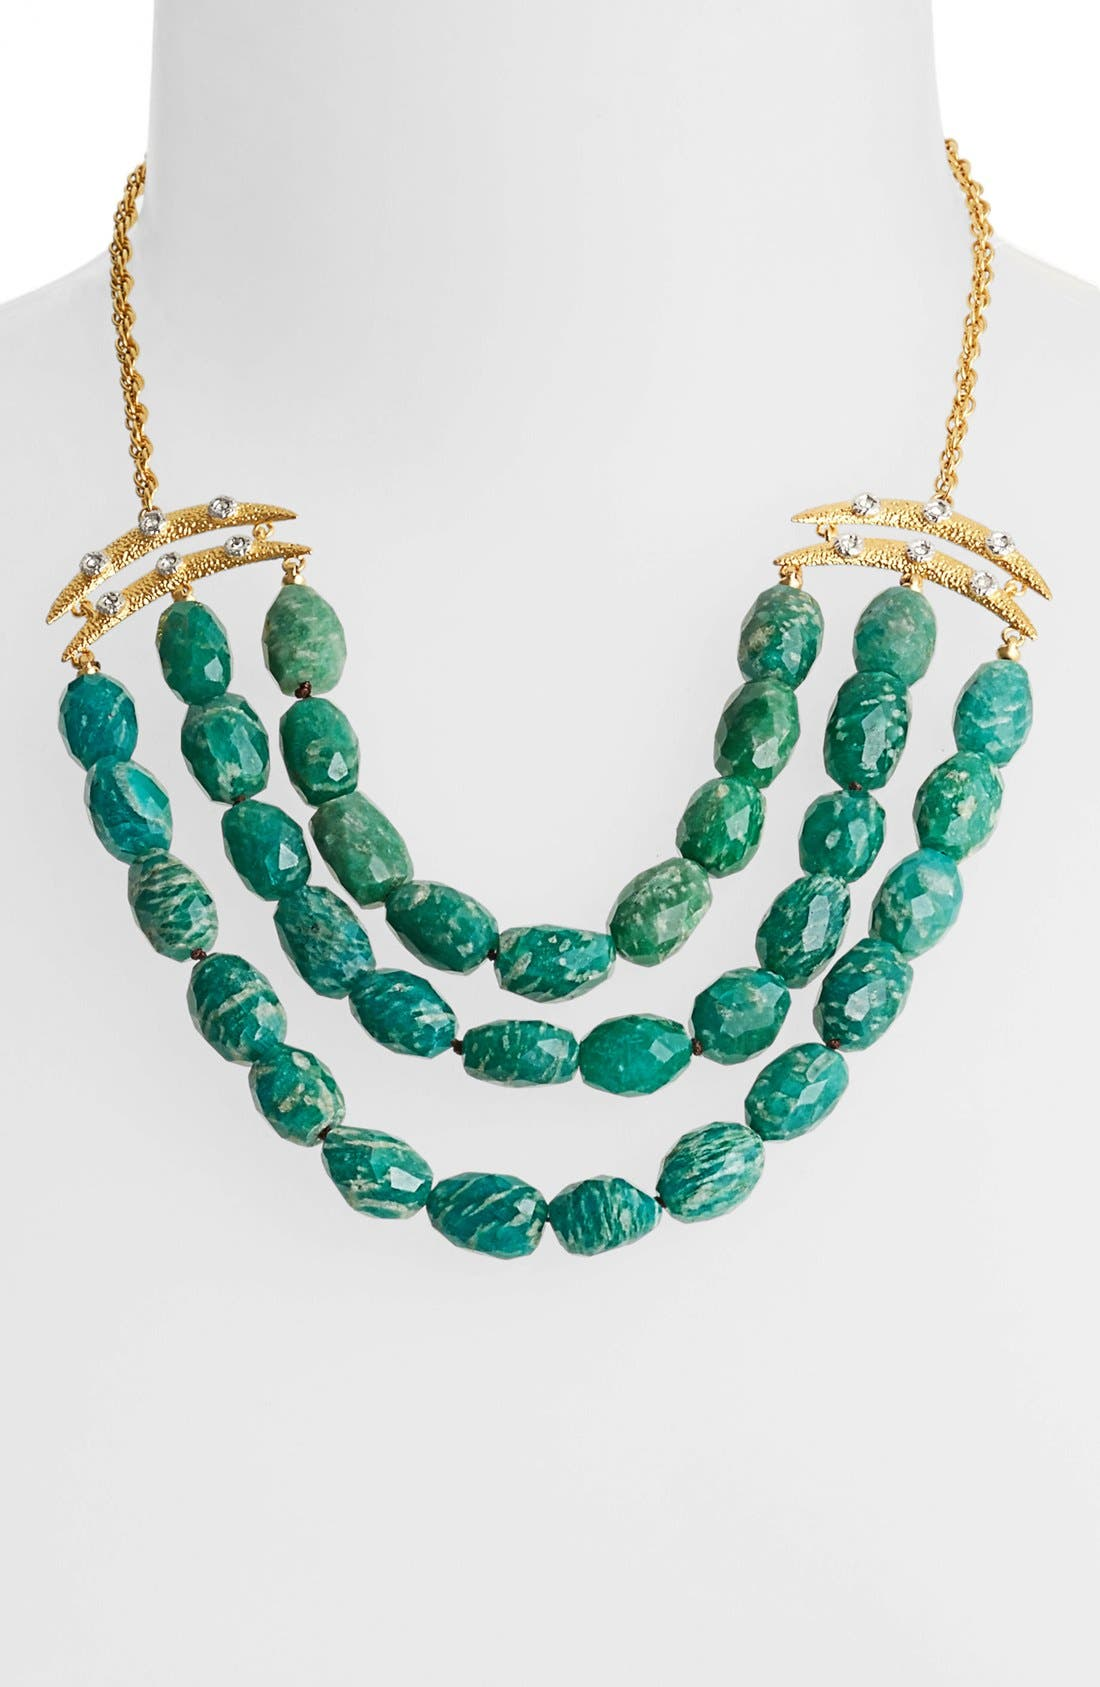 Alternate Image 1 Selected - Alexis Bittar 'Elements' Beaded Bib Necklace